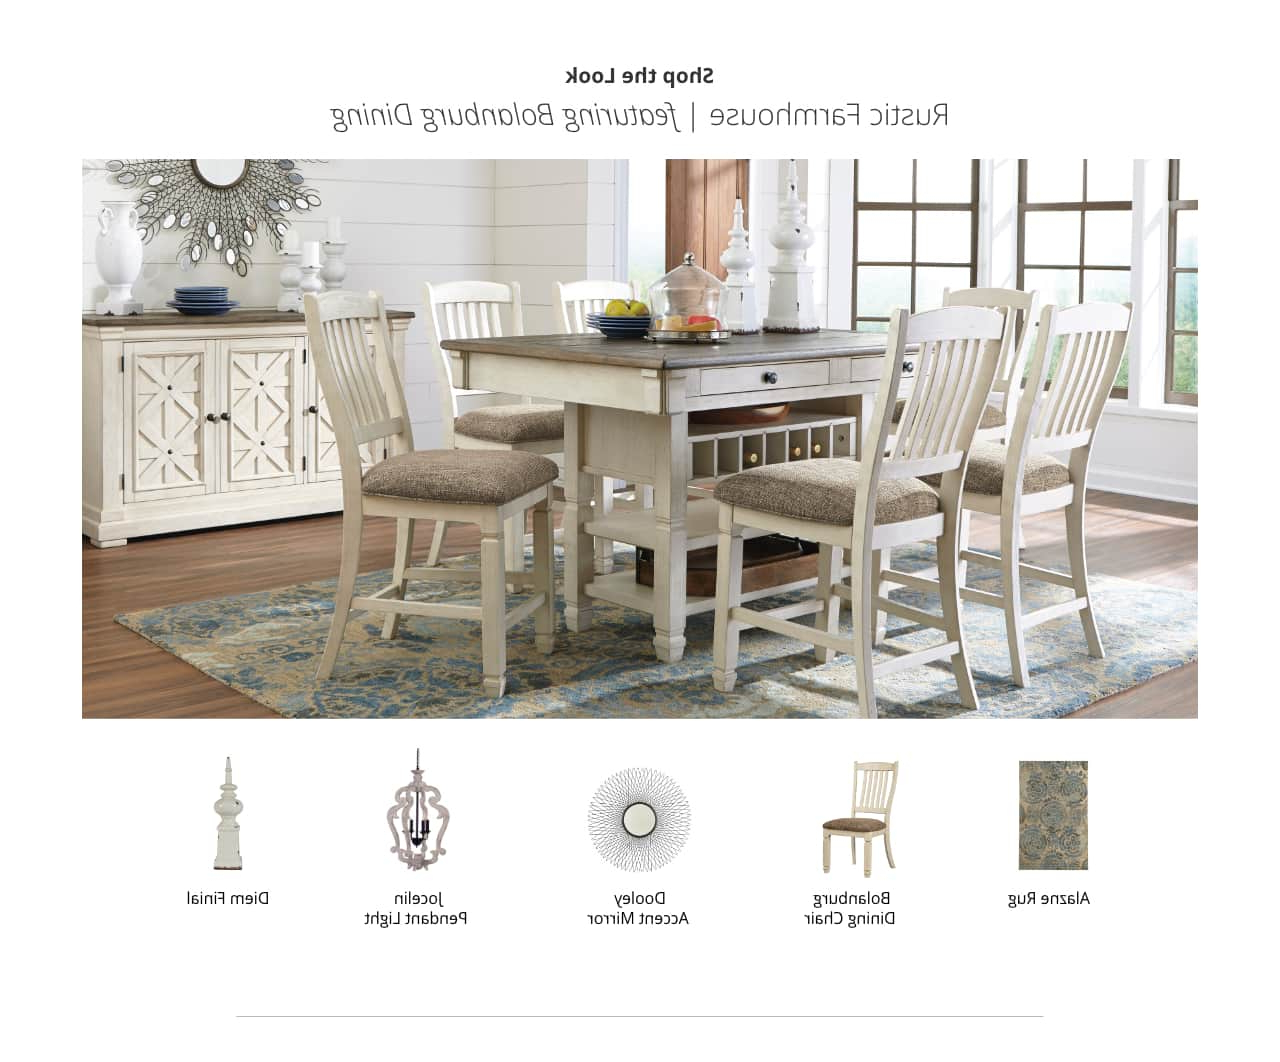 Ashley Furniture Homestore Within Rustic Country 8 Seating Casual Dining Tables (View 11 of 25)